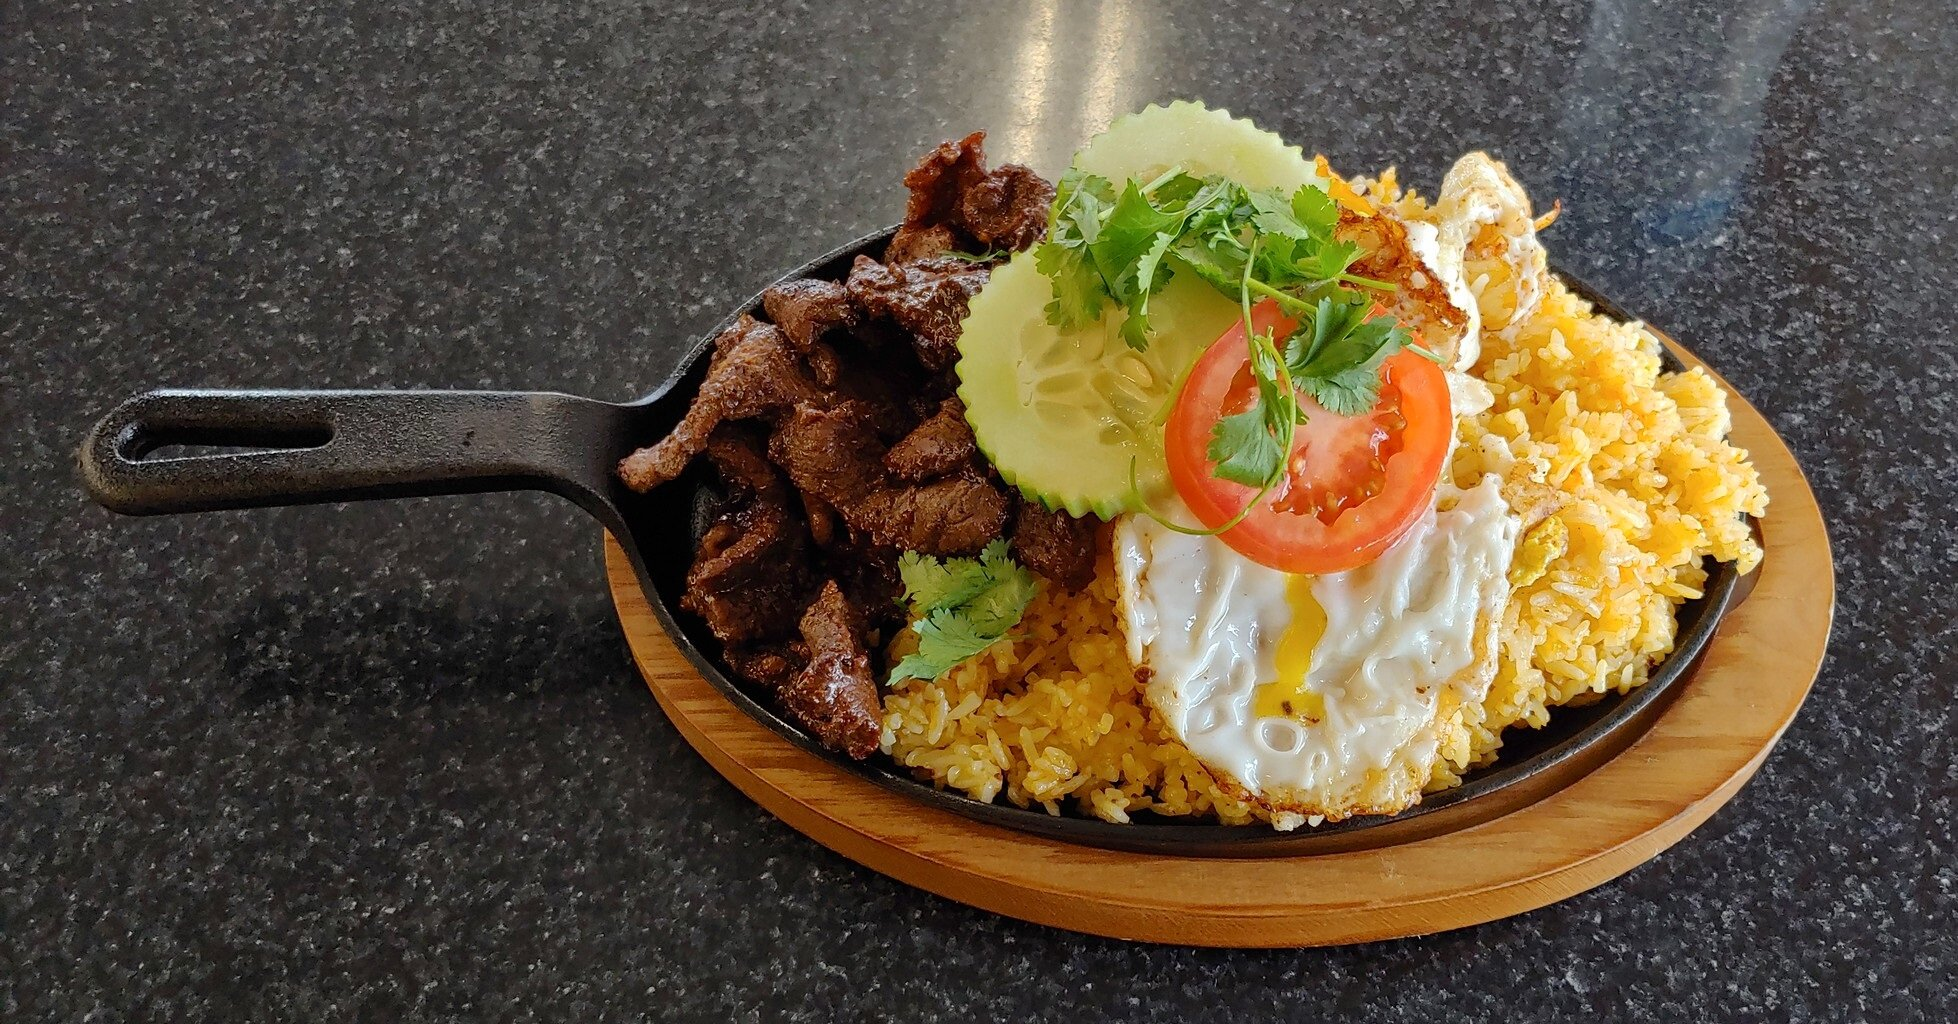 Marinated beef, garlic fried rice and a crispy fried egg // Christopher Bragg